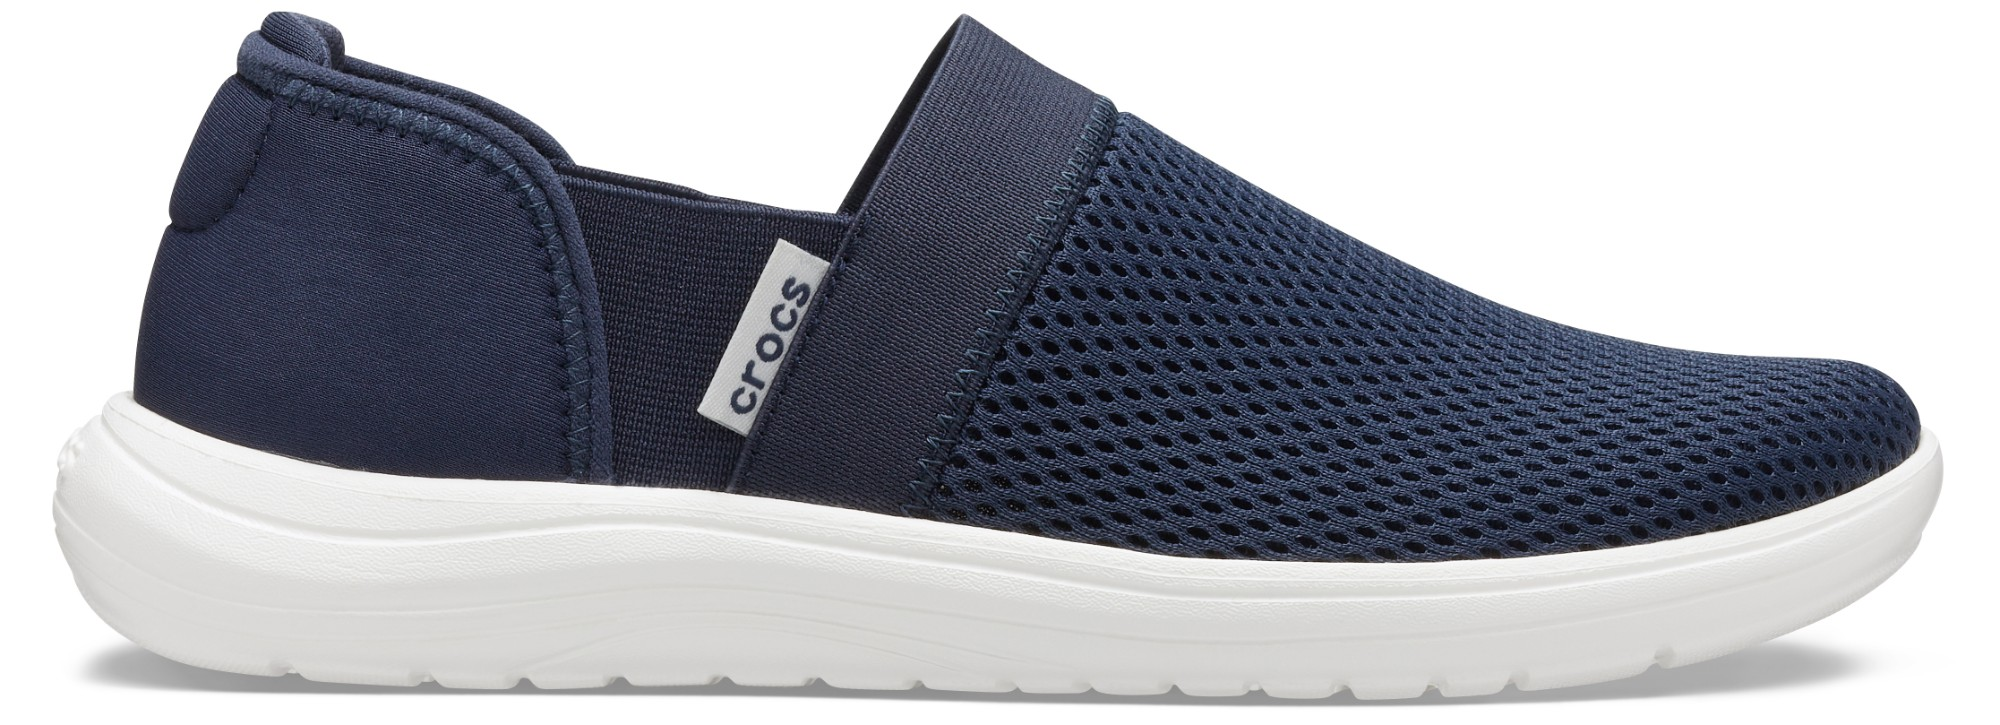 Crocs™ Reviva Mesh Slip-On Women's Navy/White 36,5